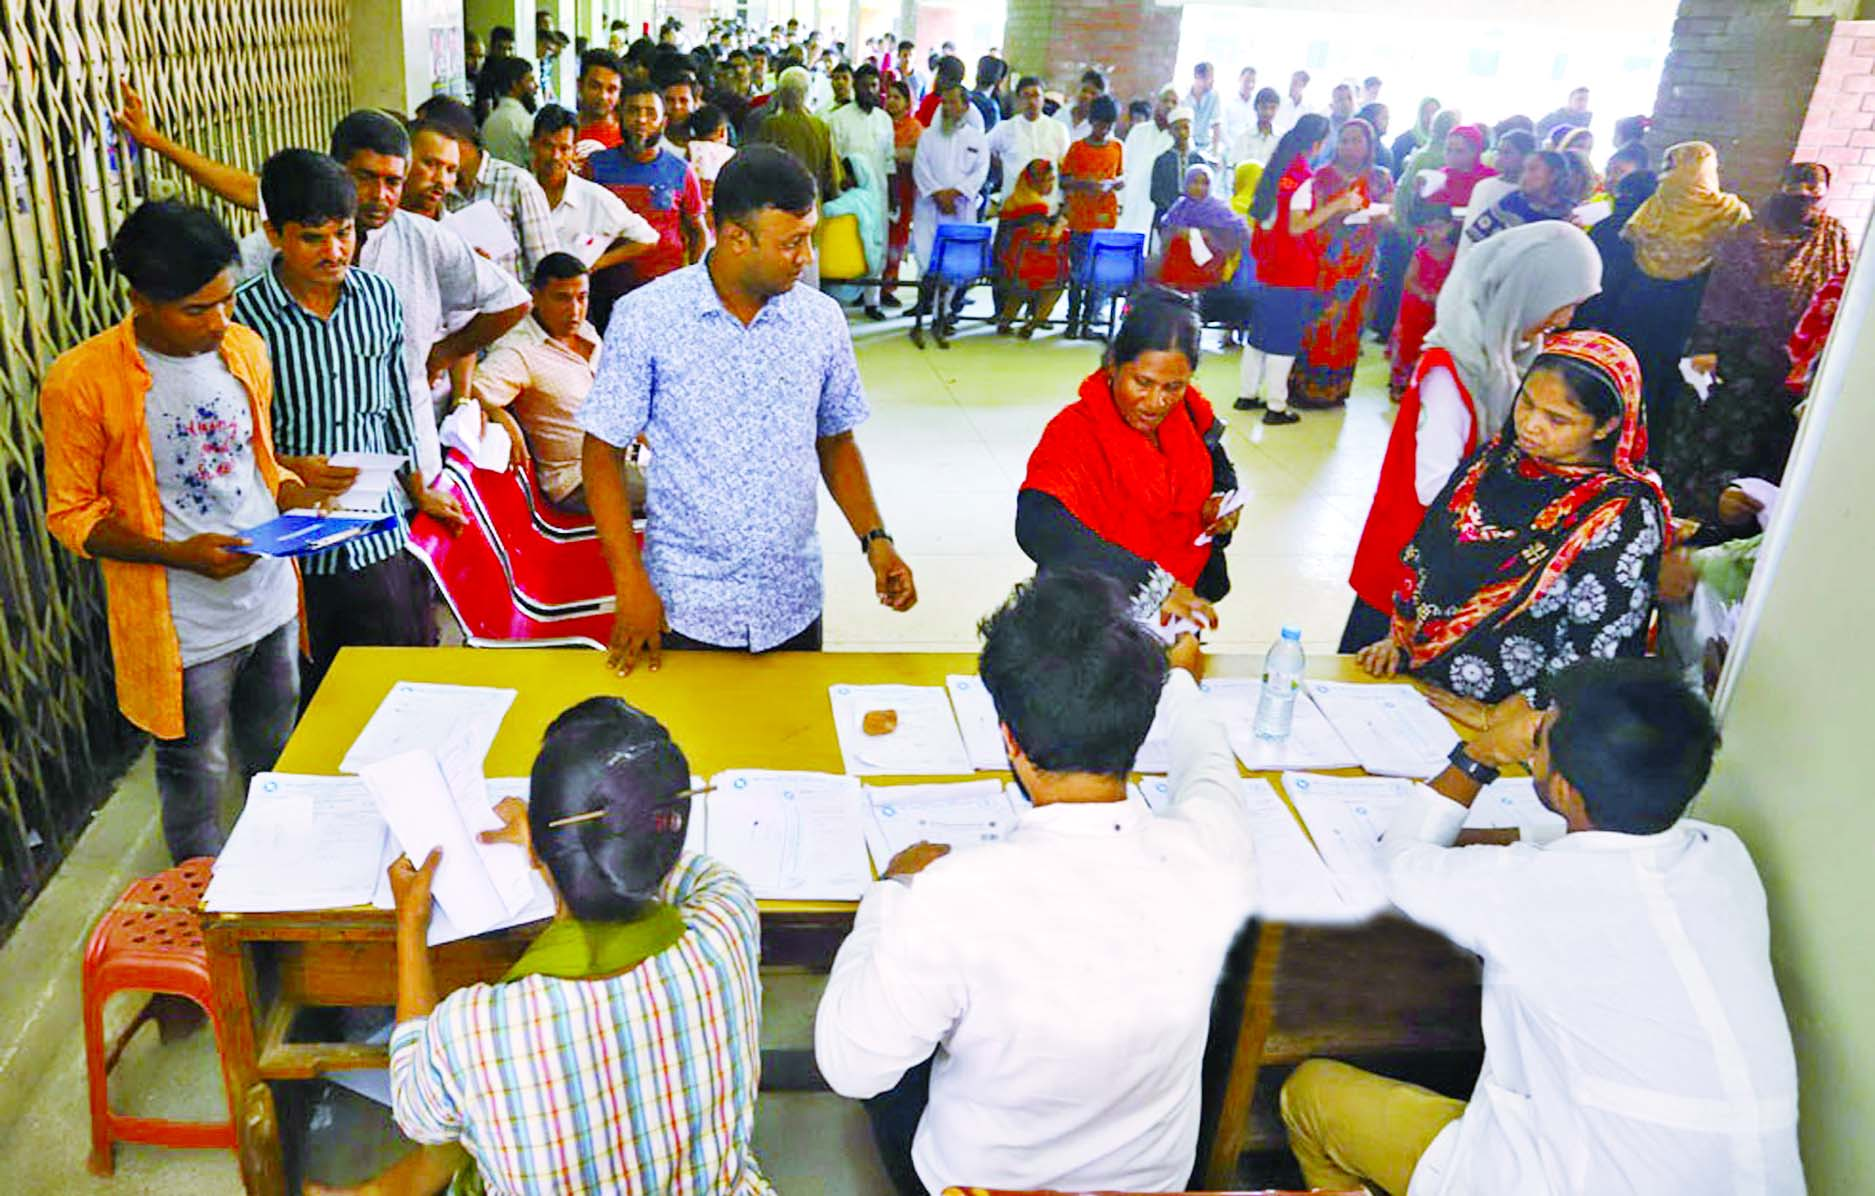 A large number of people had to wait in queue at pathology labs of Suhrawardy Medical College Hospital in the capital on Tuesday to collect NS1 test reports of their relatives.